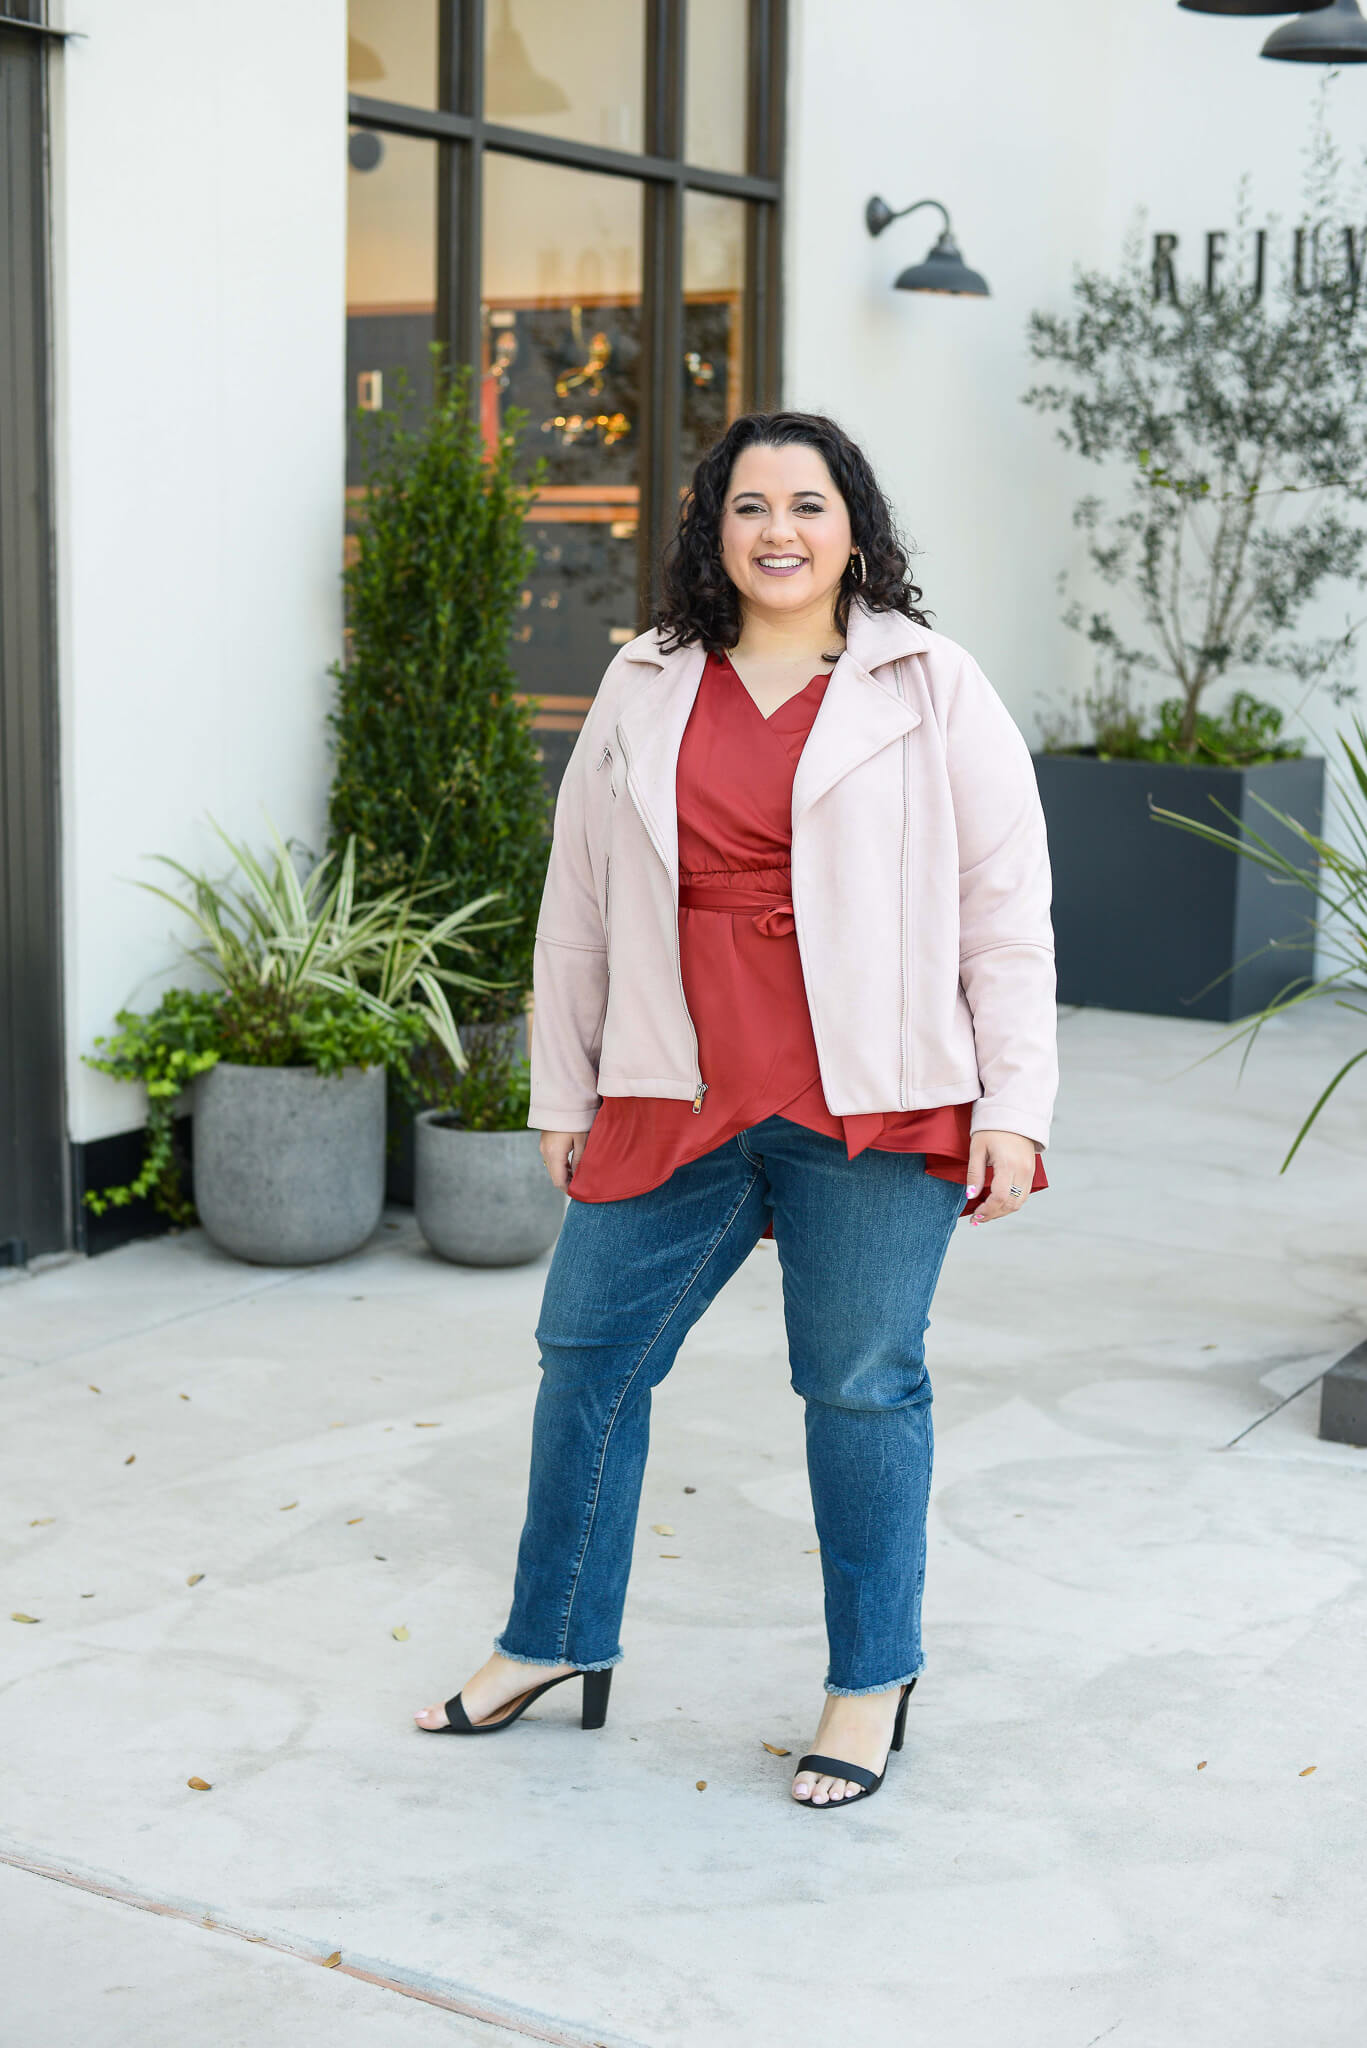 The perfect plus size date night outfit